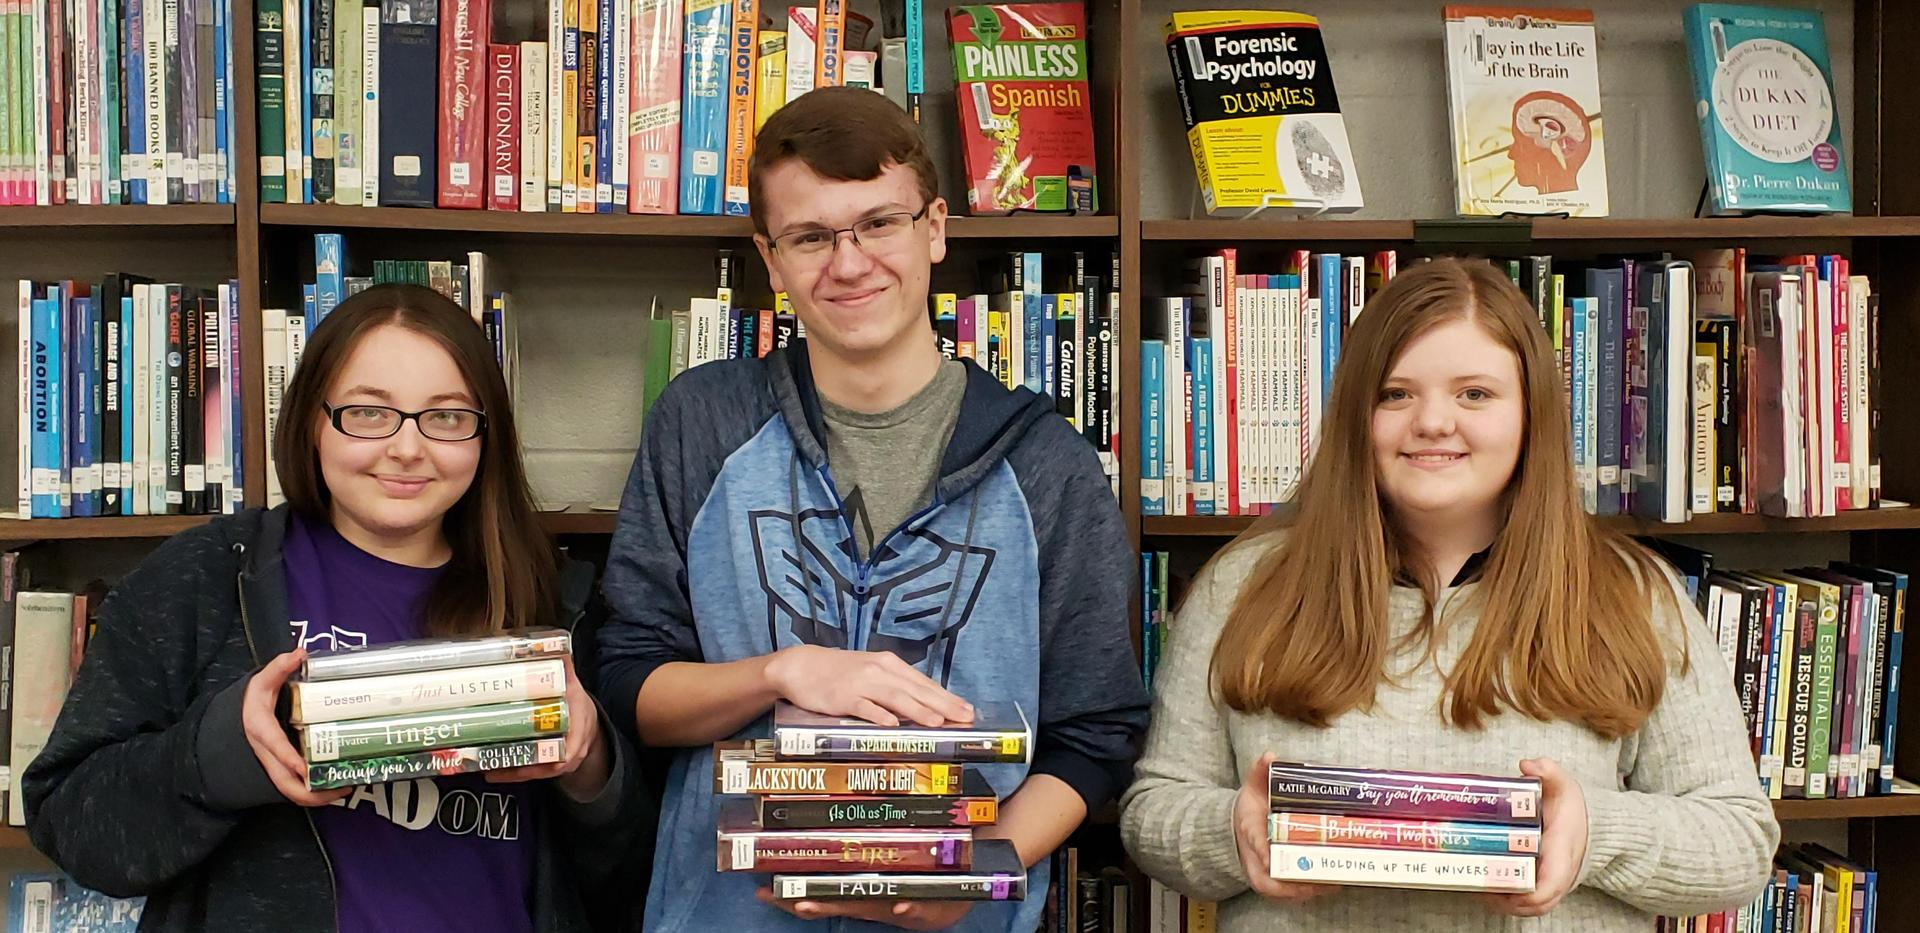 Winners of Book Spine Poetry with entries